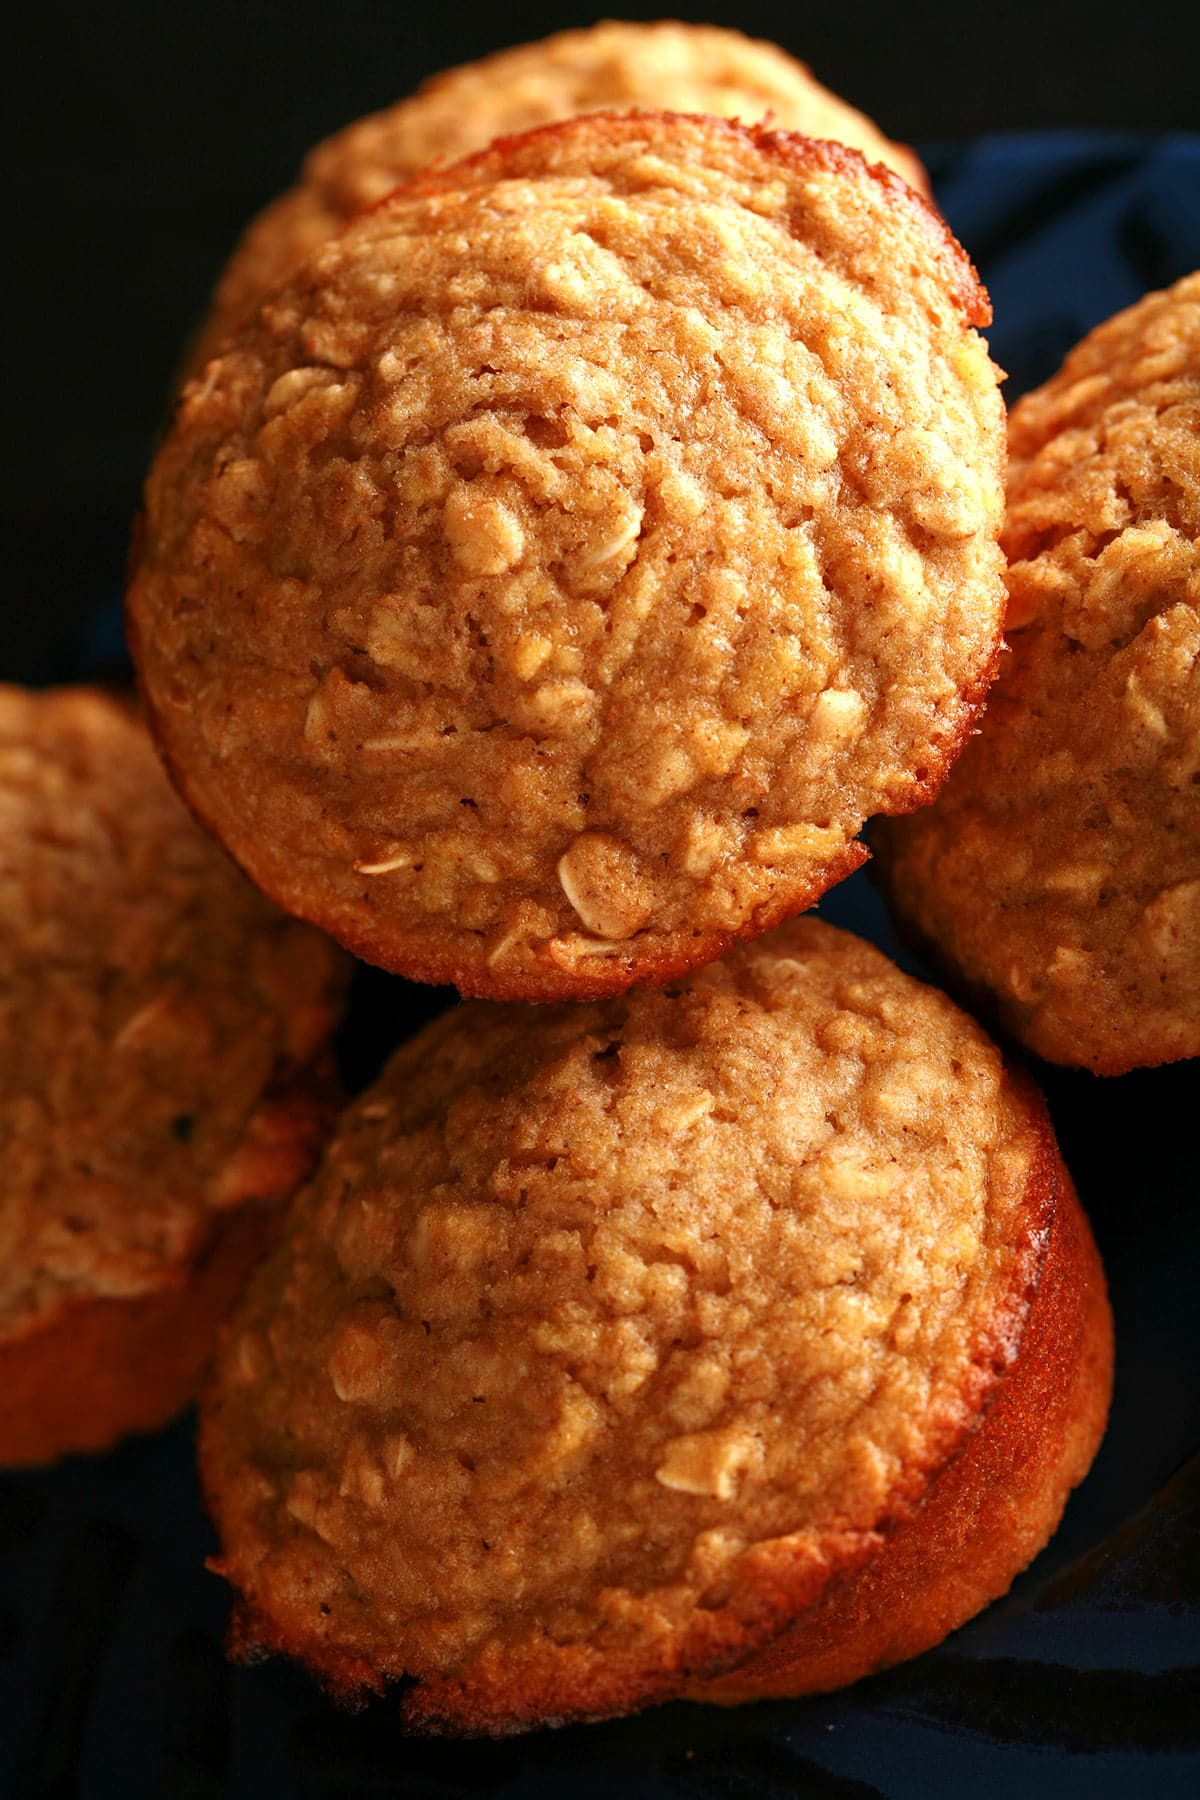 A small blue plate with a black geometric design around the edge is stacked with these healthier apple oatmeal muffins.